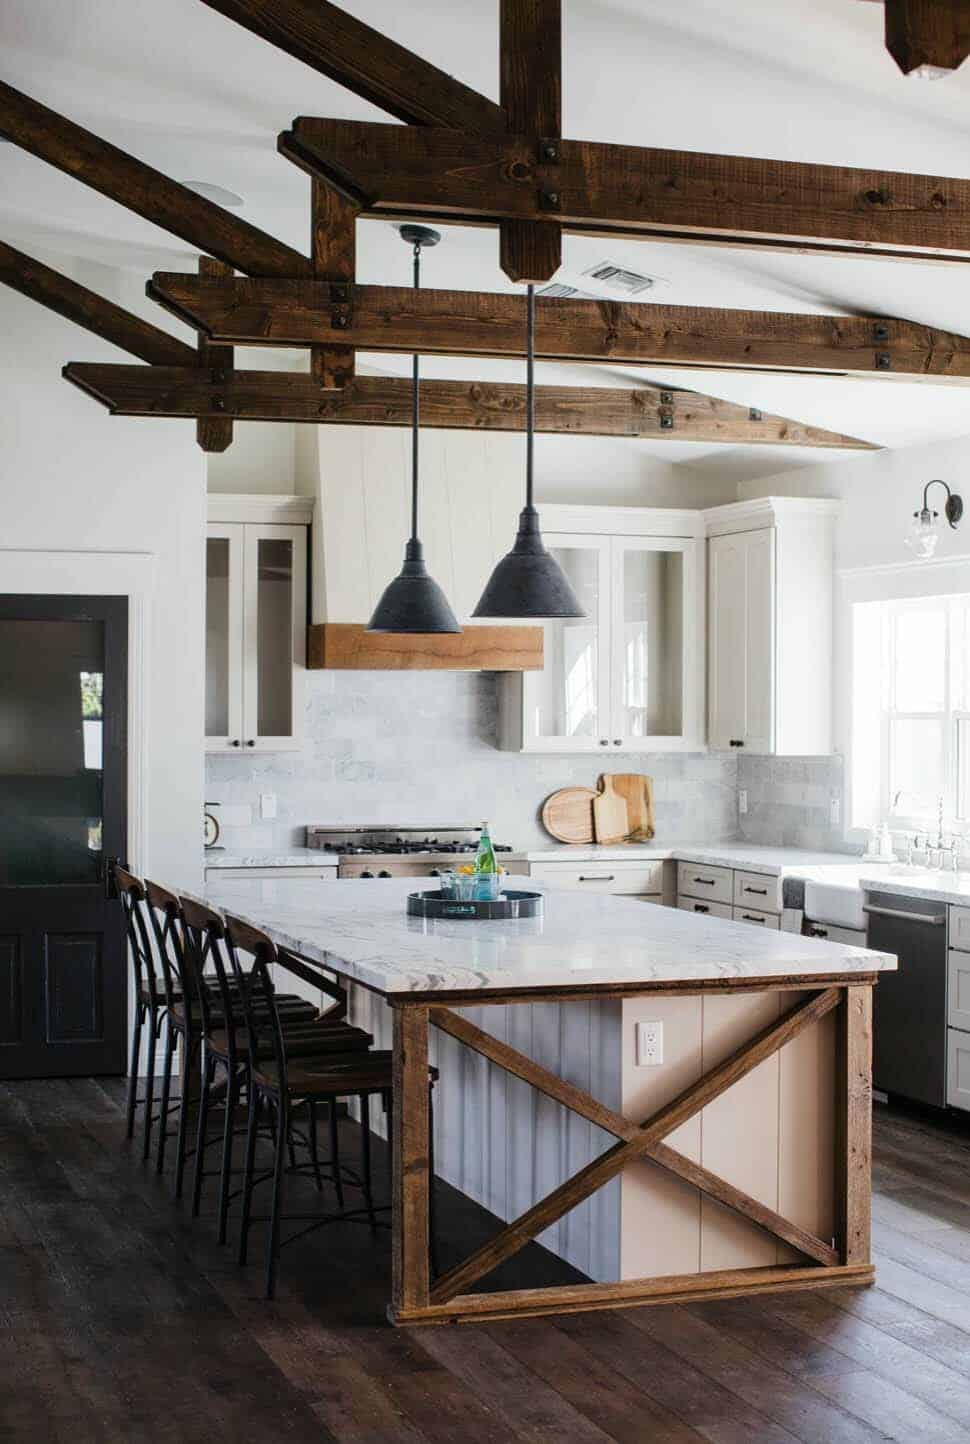 Farm House Kitchens: 12 Gorgeous Farmhouse Kitchen Cabinets Design Ideas